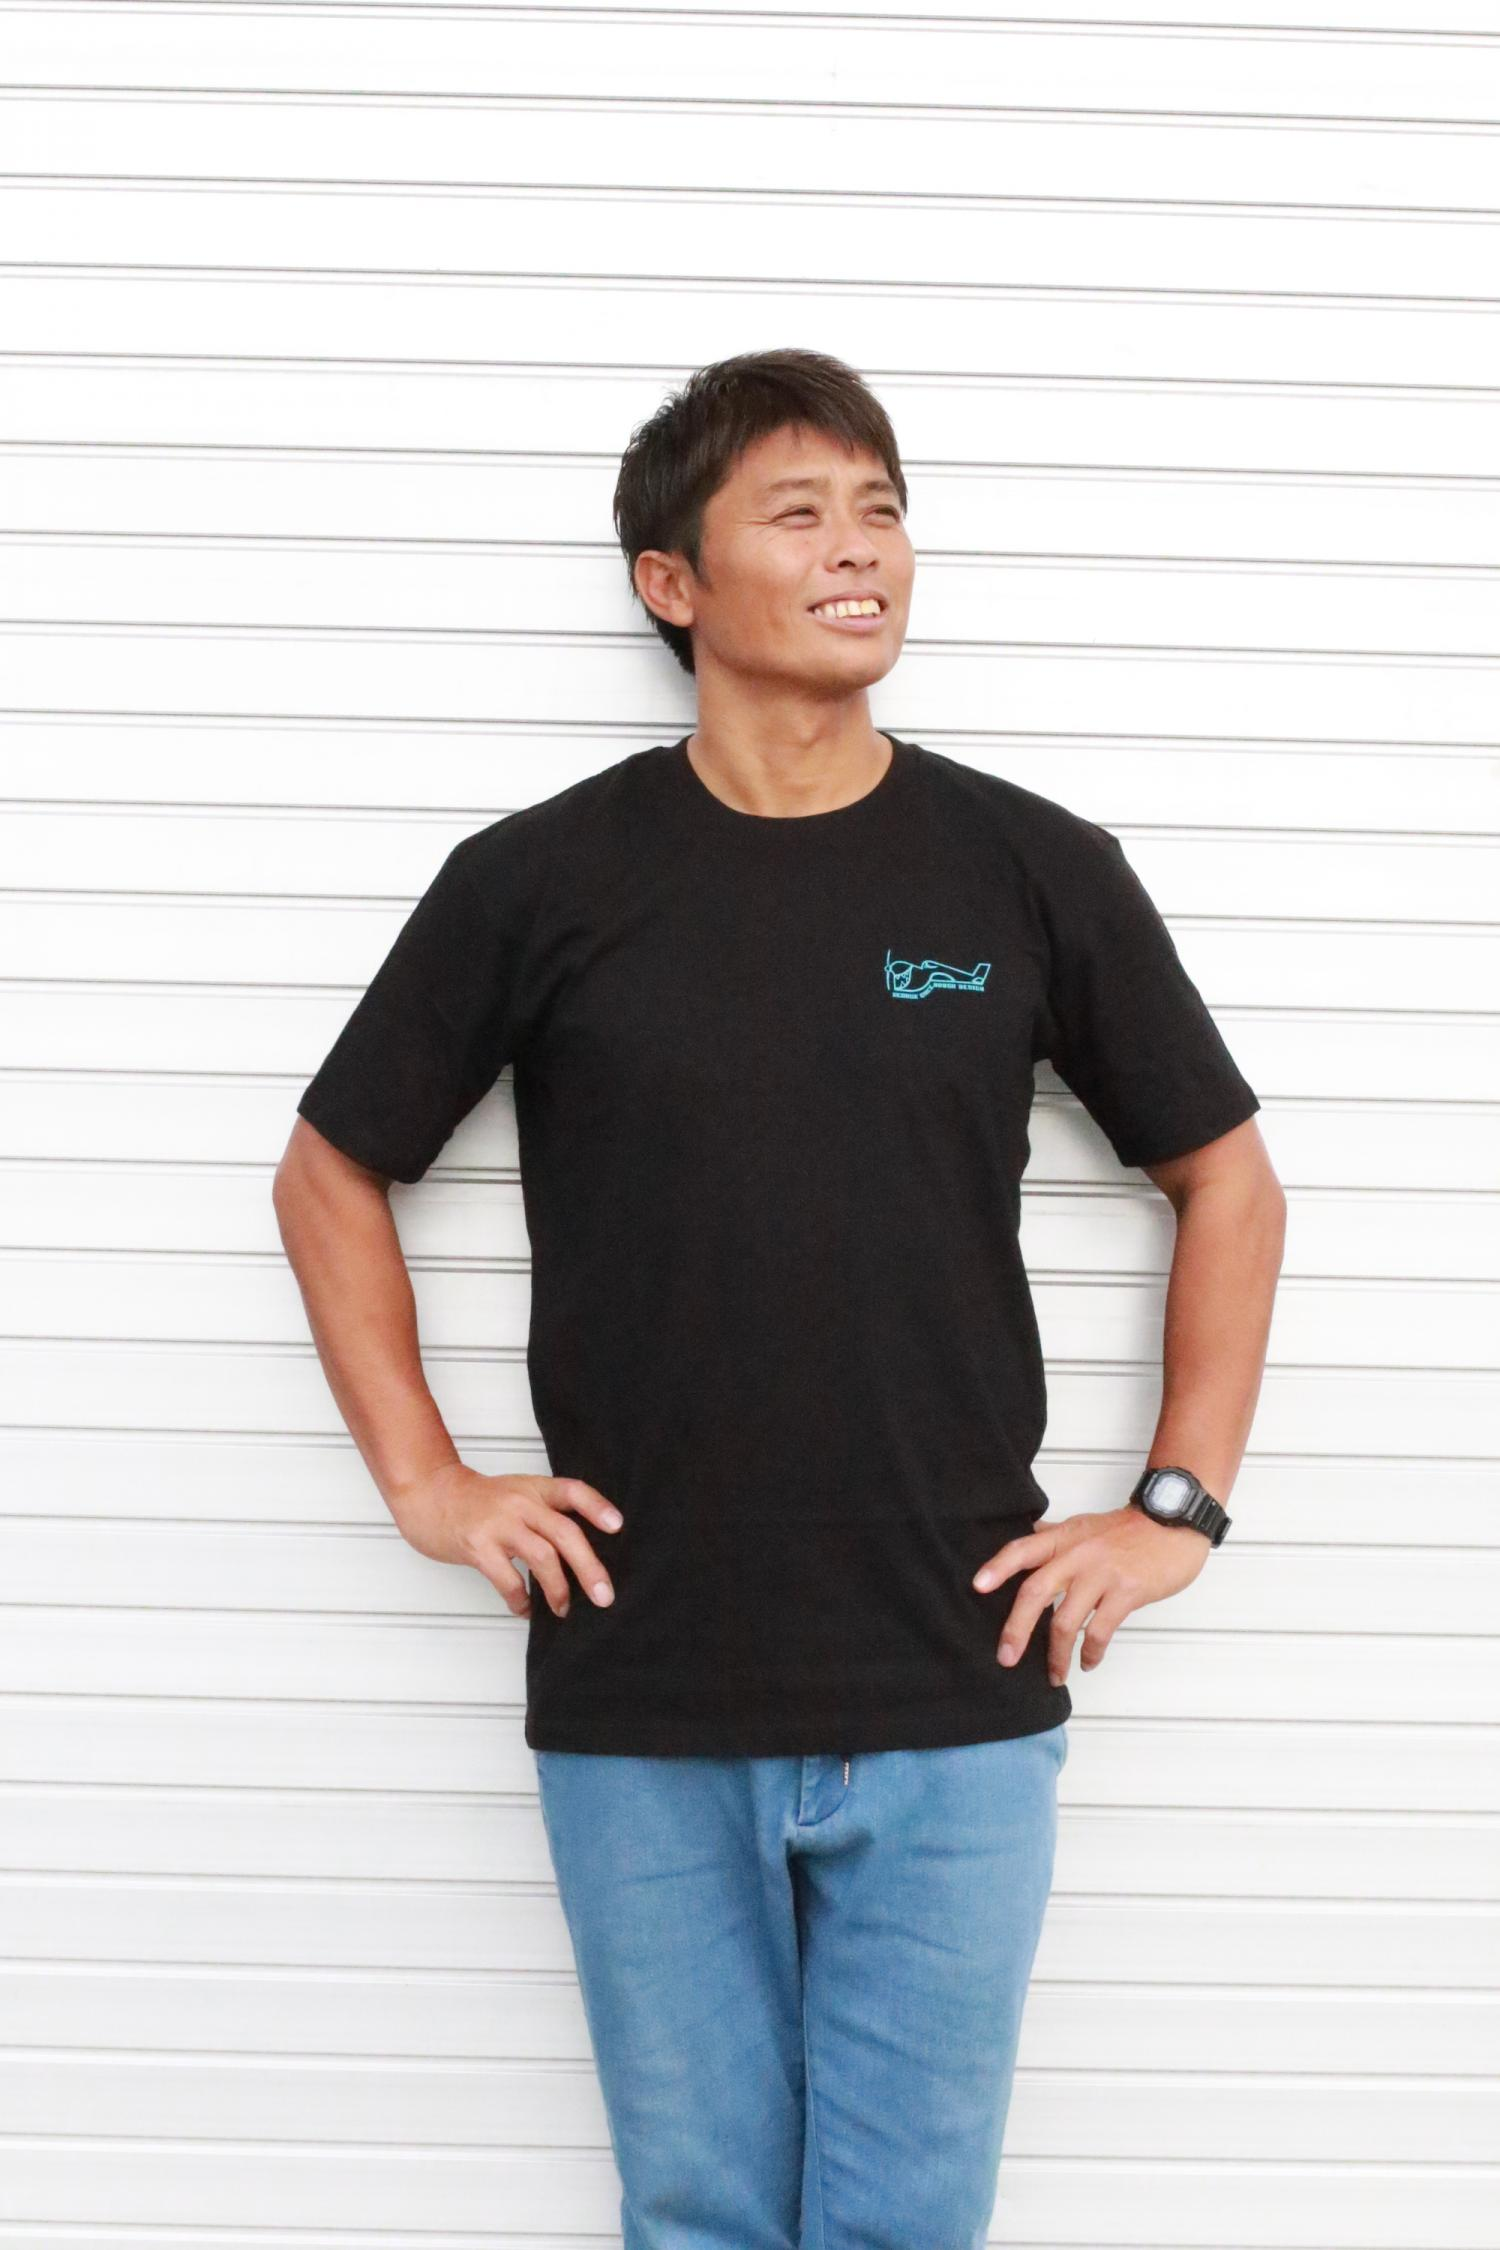 GREENOUGH AIRPLANE BACK LOGO T-SHIRT BLK